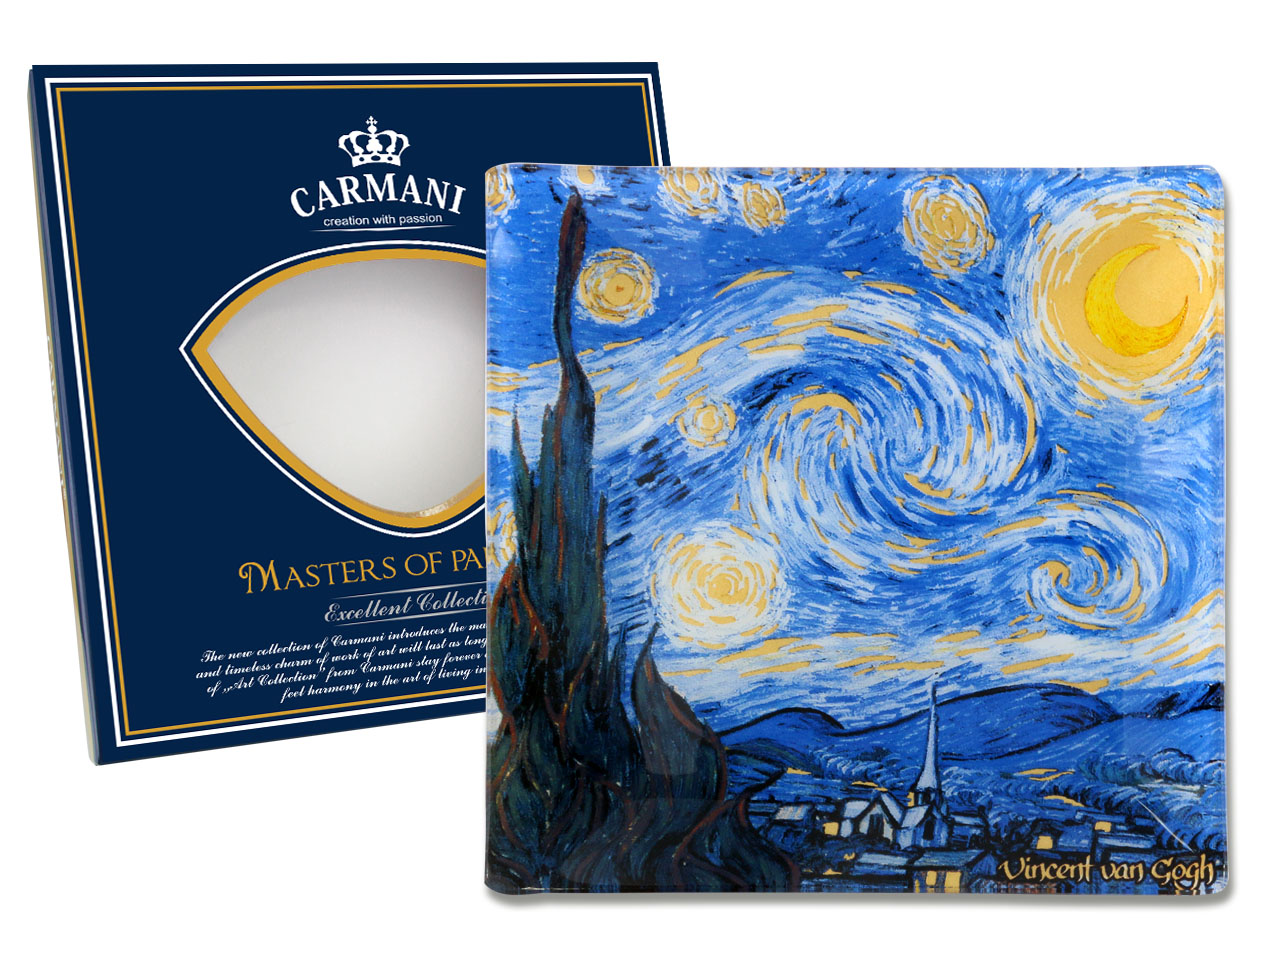 Sklenený tanier 13x13cm Vincent van GOGH The Starry Night, CARMANI